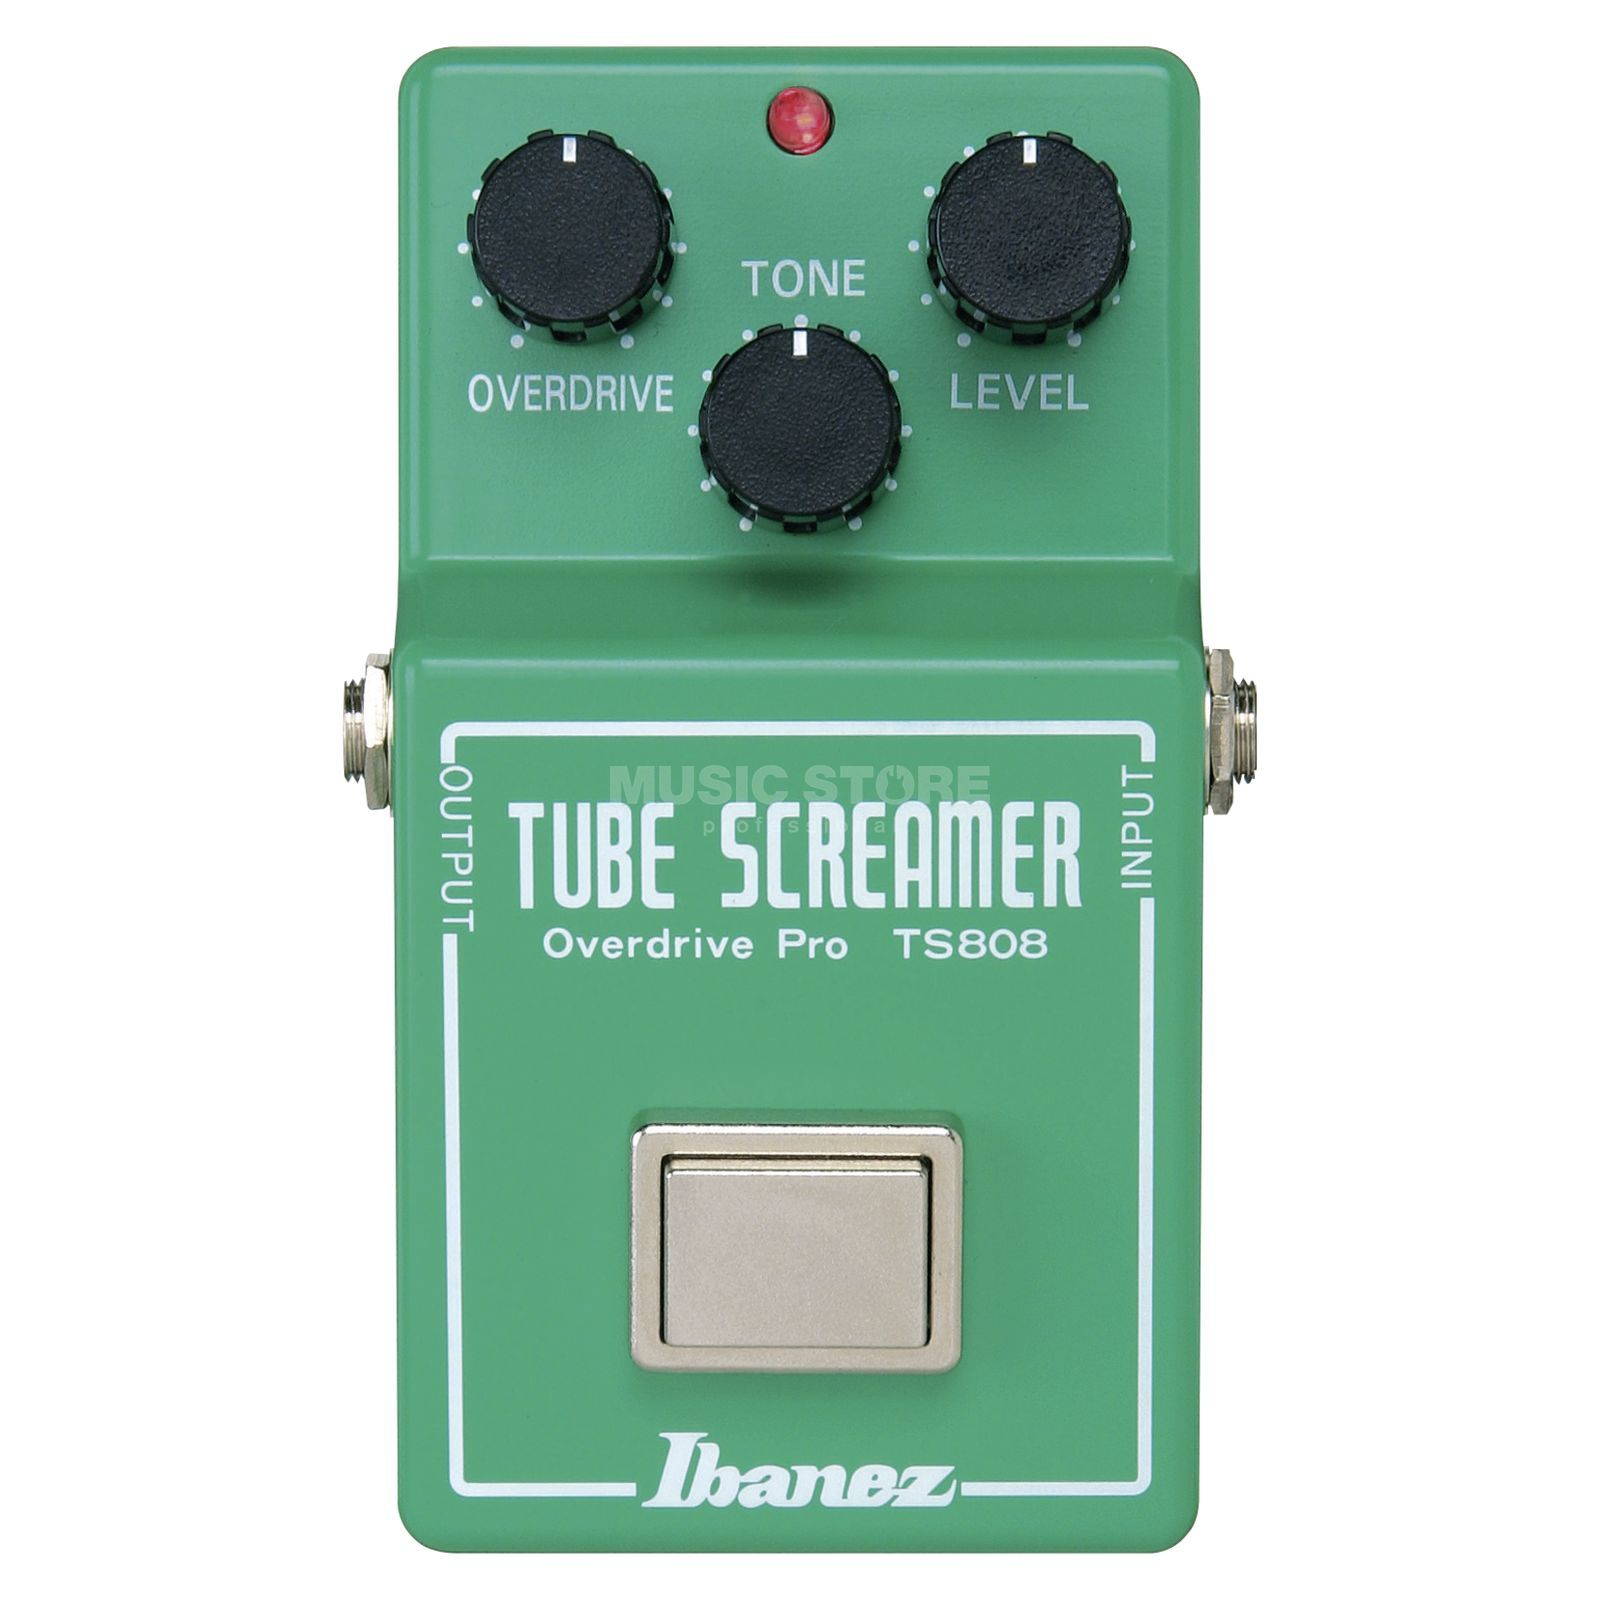 Ibanez ts808 tube screamer reissue vintage overdrive pedal